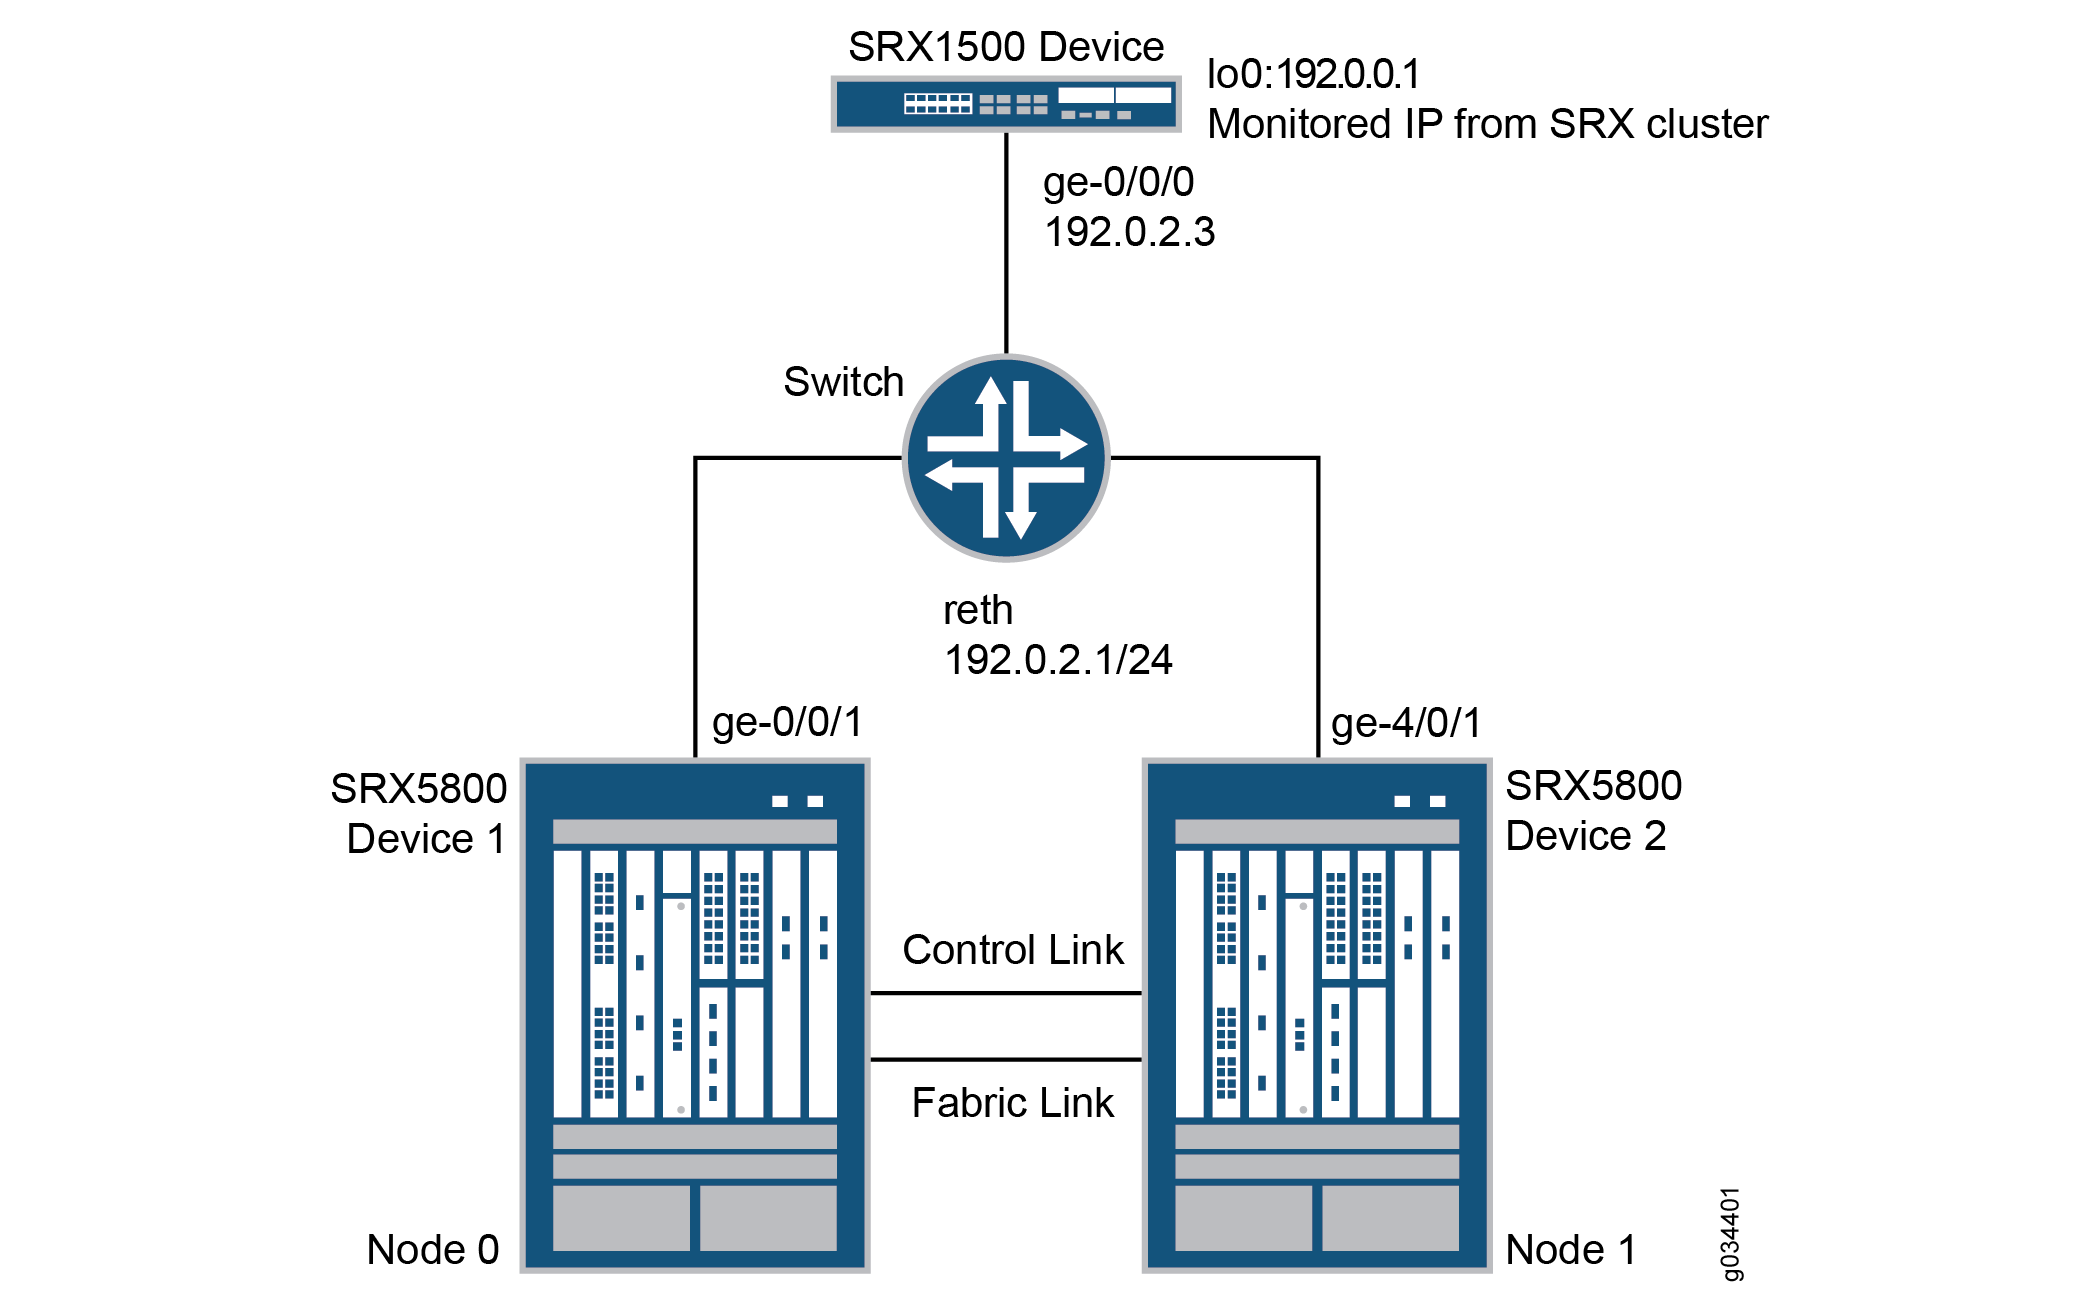 Example: Configuring IP Monitoring on SRX Series Devices